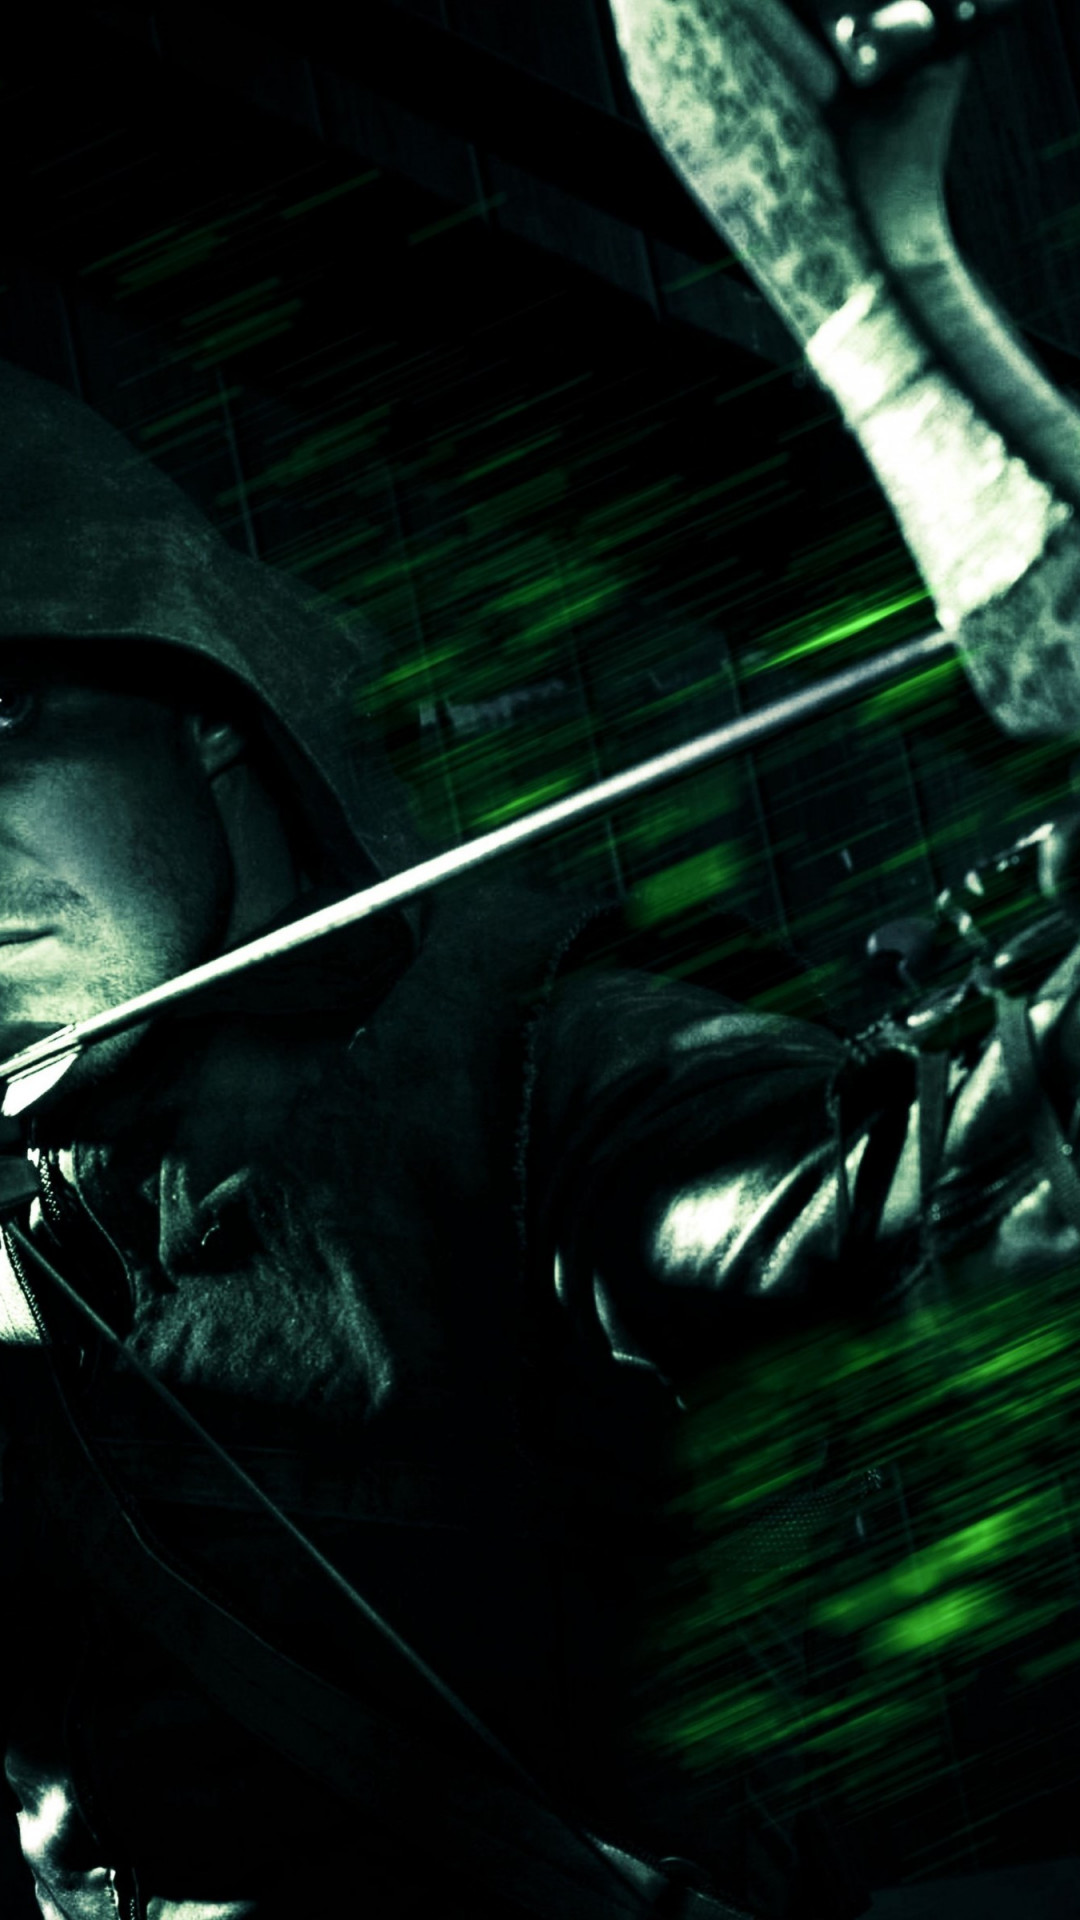 Green Arrow wallpaper 1080x1920